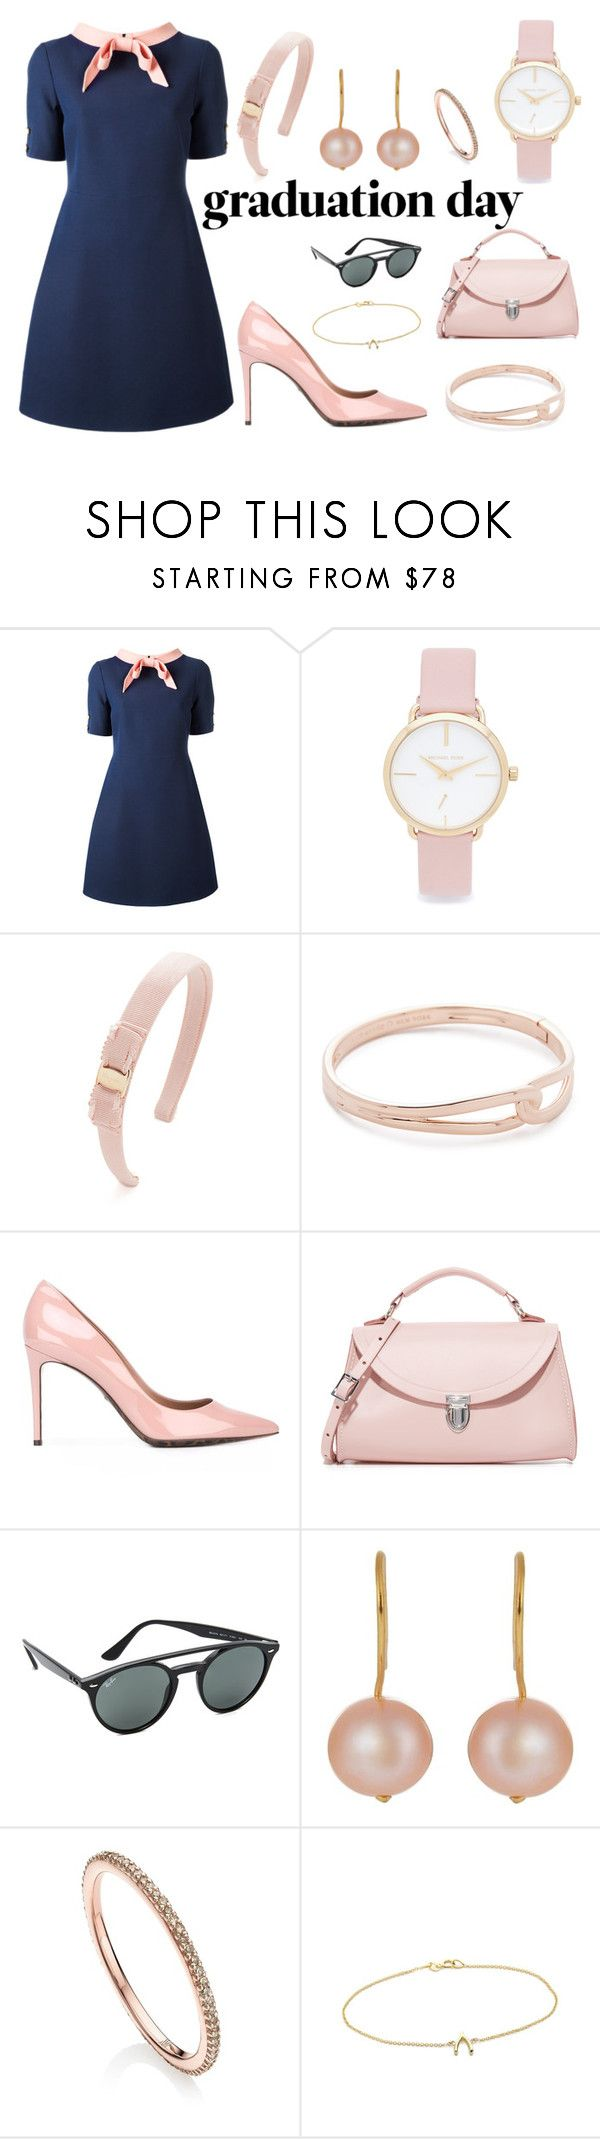 """Graduation Day"" by camry-brynn ❤ liked on Polyvore featuring Gucci, Michael Kors, Salvatore Ferragamo, Kate Spade, Dolce&Gabbana, The Cambridge Satchel Company, Ray-Ban, Aurélie Bidermann, Monica Vinader and Jennifer Meyer Jewelry"